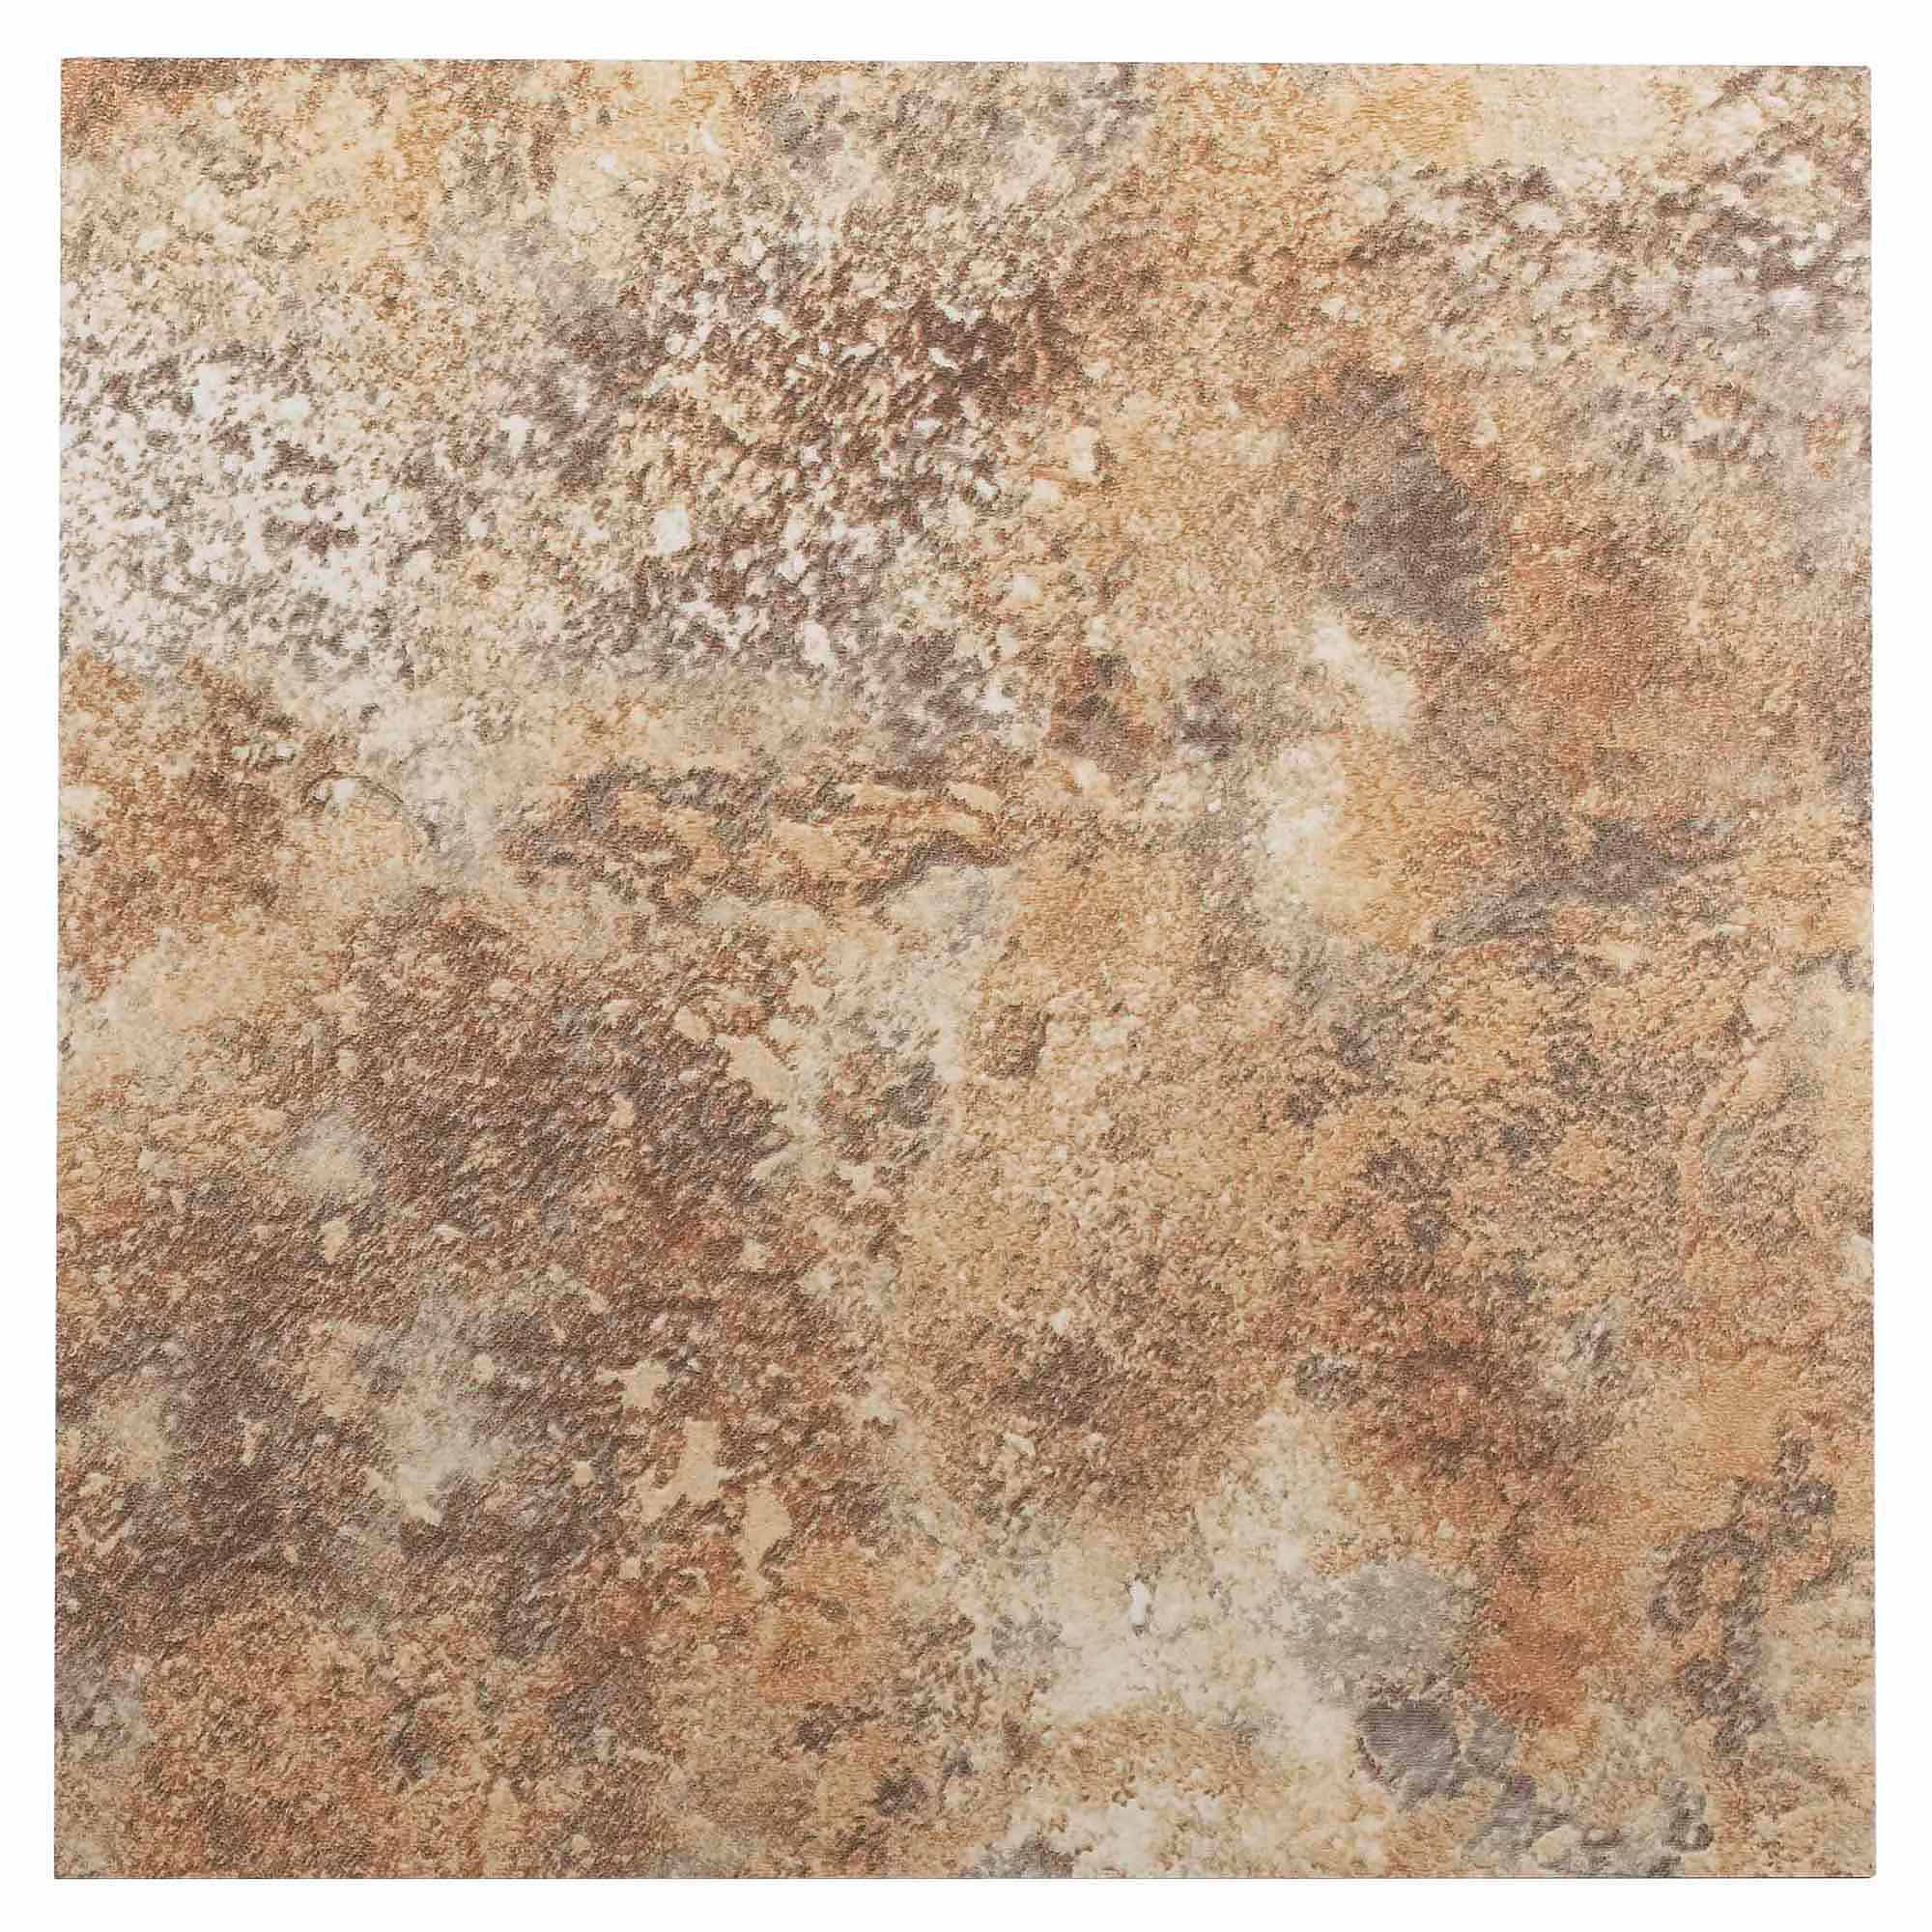 Nexus granite 12x12 self adhesive vinyl floor tile 20 tiles20 nexus granite 12x12 self adhesive vinyl floor tile 20 tiles20 sqft walmart doublecrazyfo Choice Image